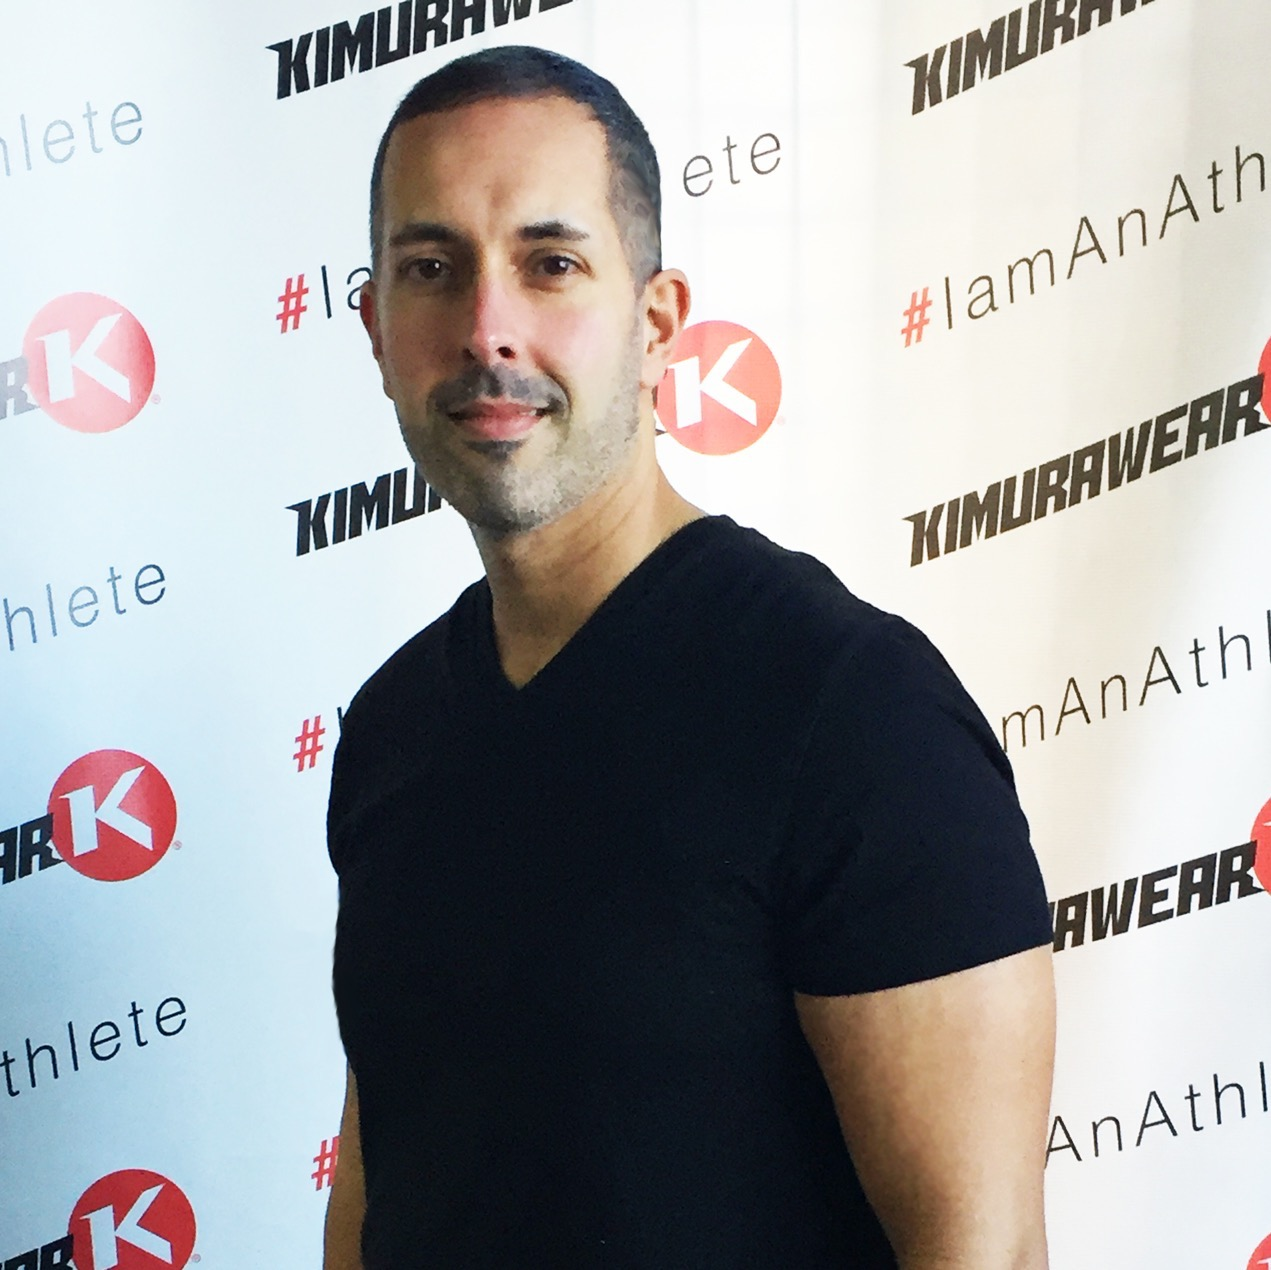 KIMURAWEAR FIGHTS TO END CANCER